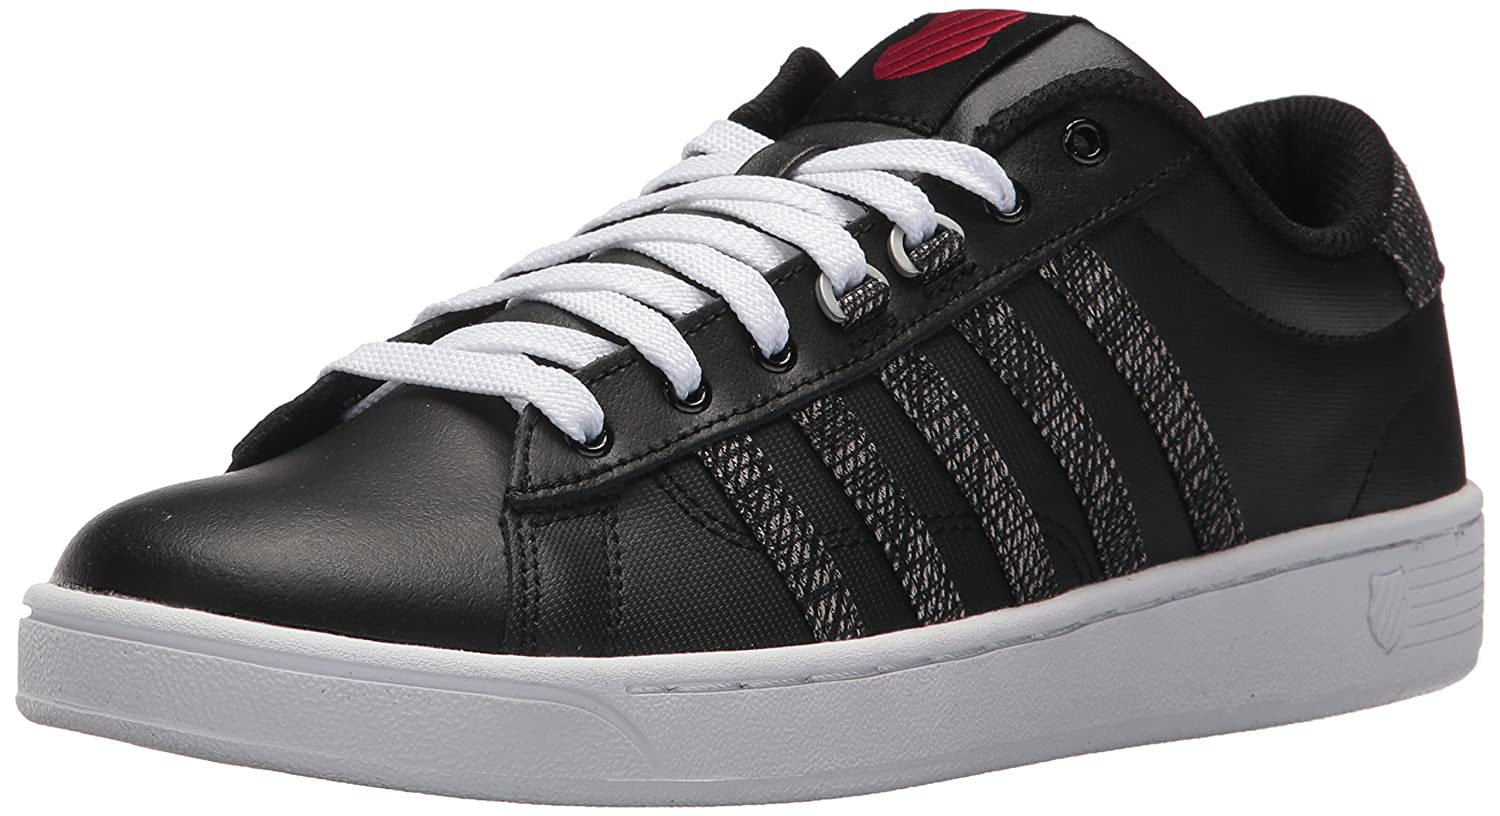 K-Swiss Women's Hoke CMF Sneaker B071VVHSNV 8 B(M) US|Black/White/Chili Pepper